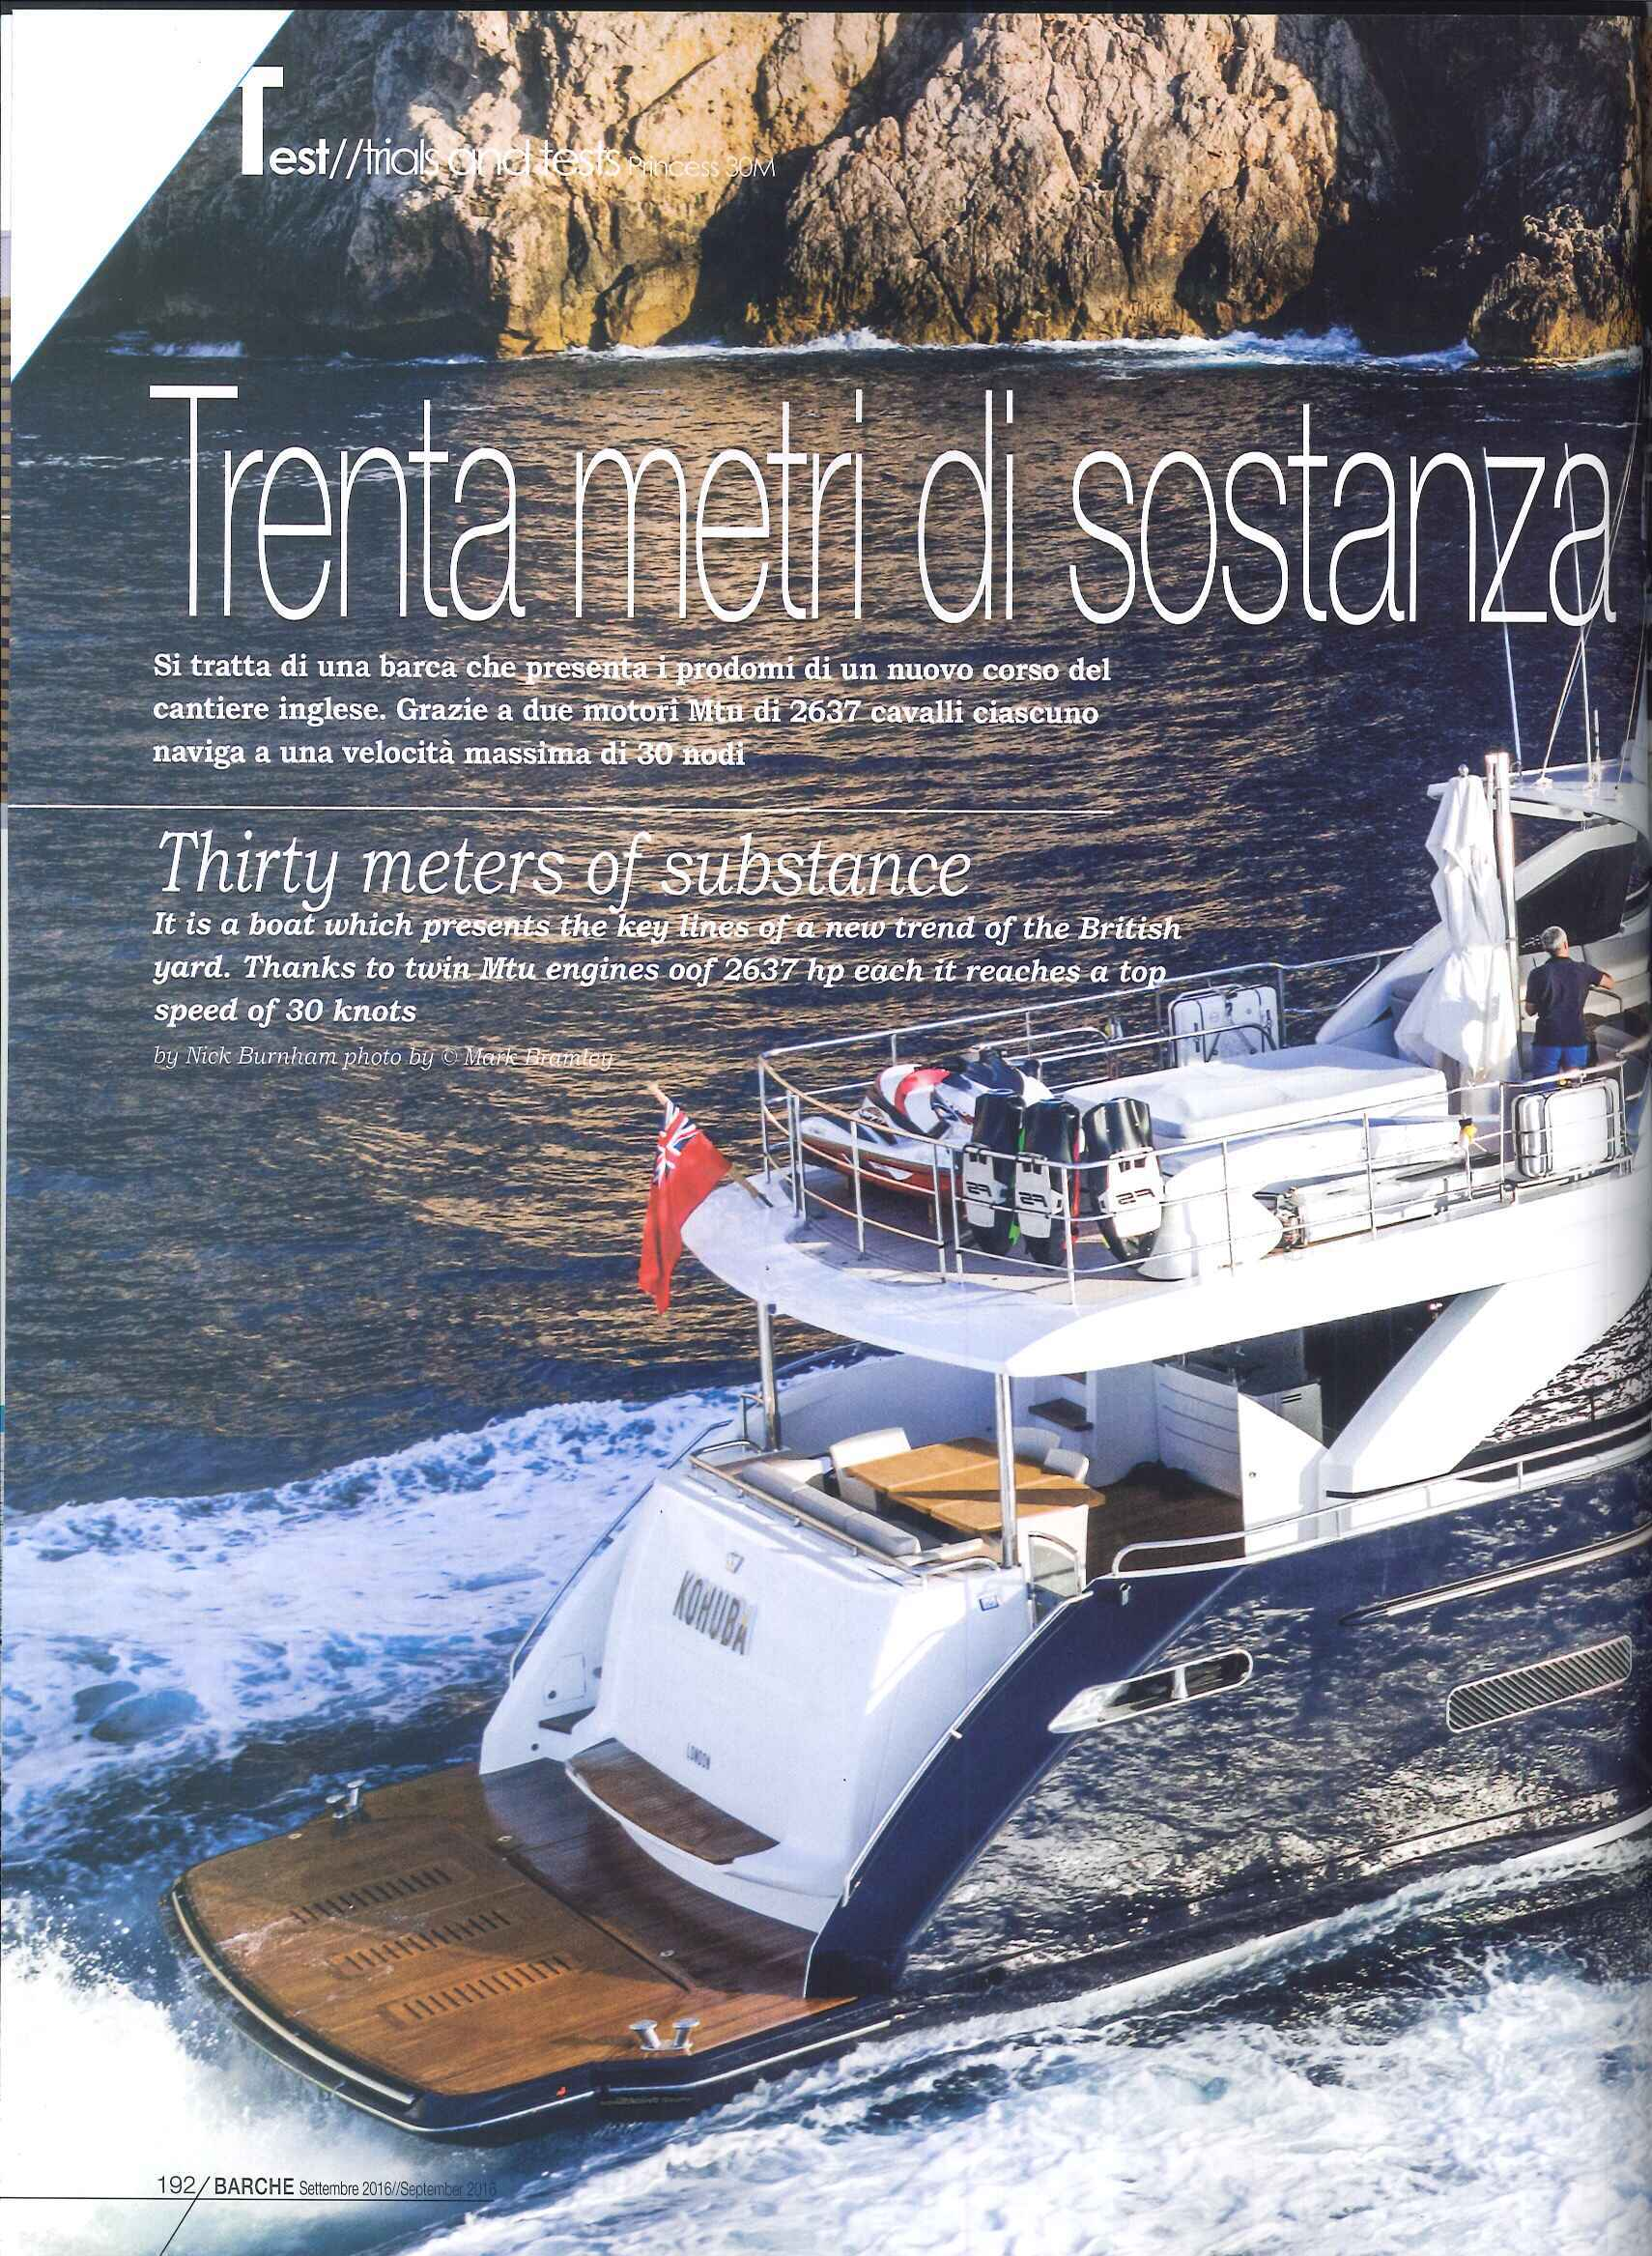 2016 09 PRESS PRINCESS 30M BARCHE (1).jpg